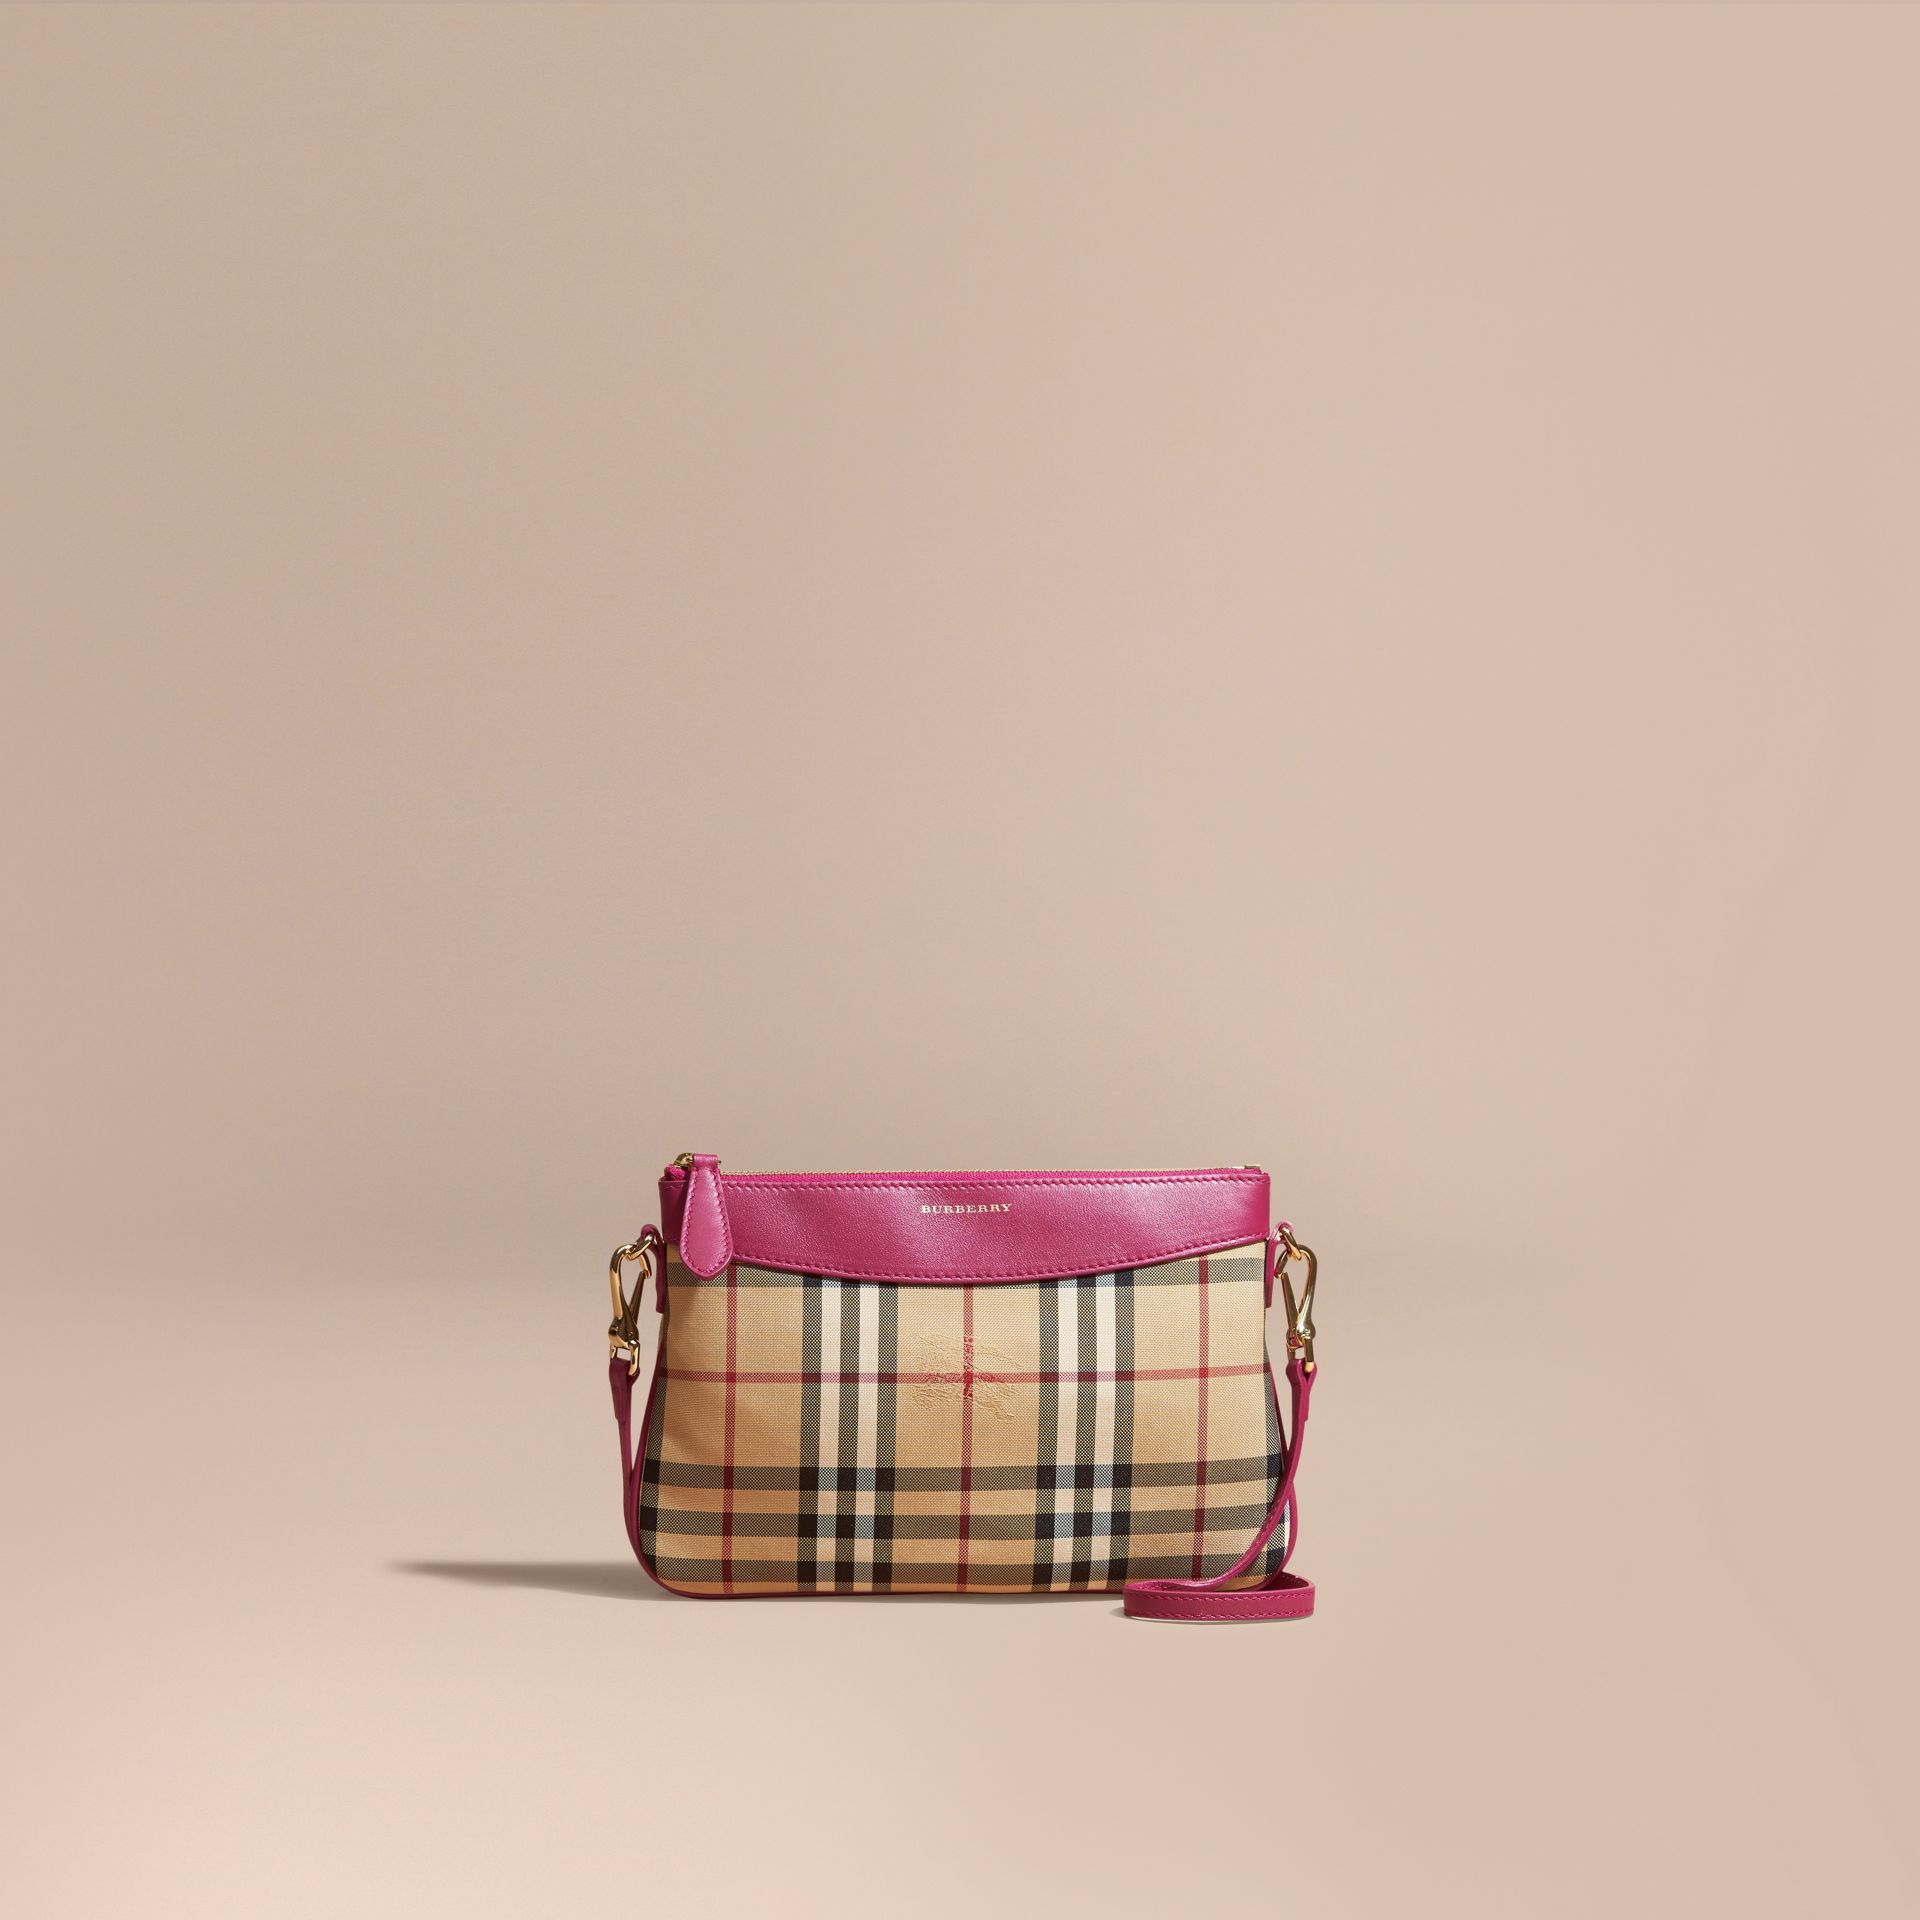 Horseferry Check and Leather Clutch Bag Brilliant Fuchsia - gallery image 9